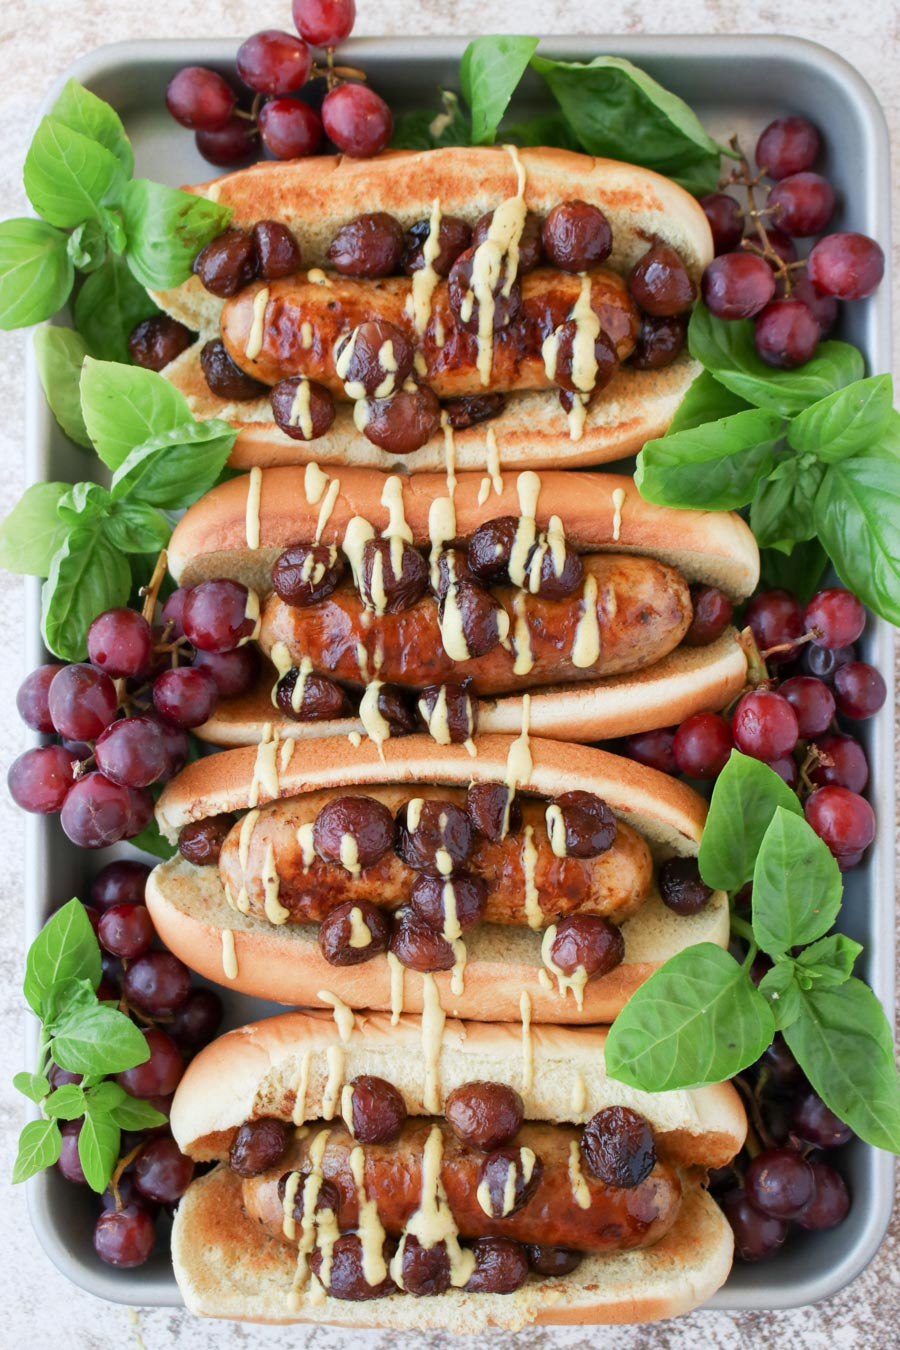 a tray with four sausages in buns topped with grapes and fresh basil